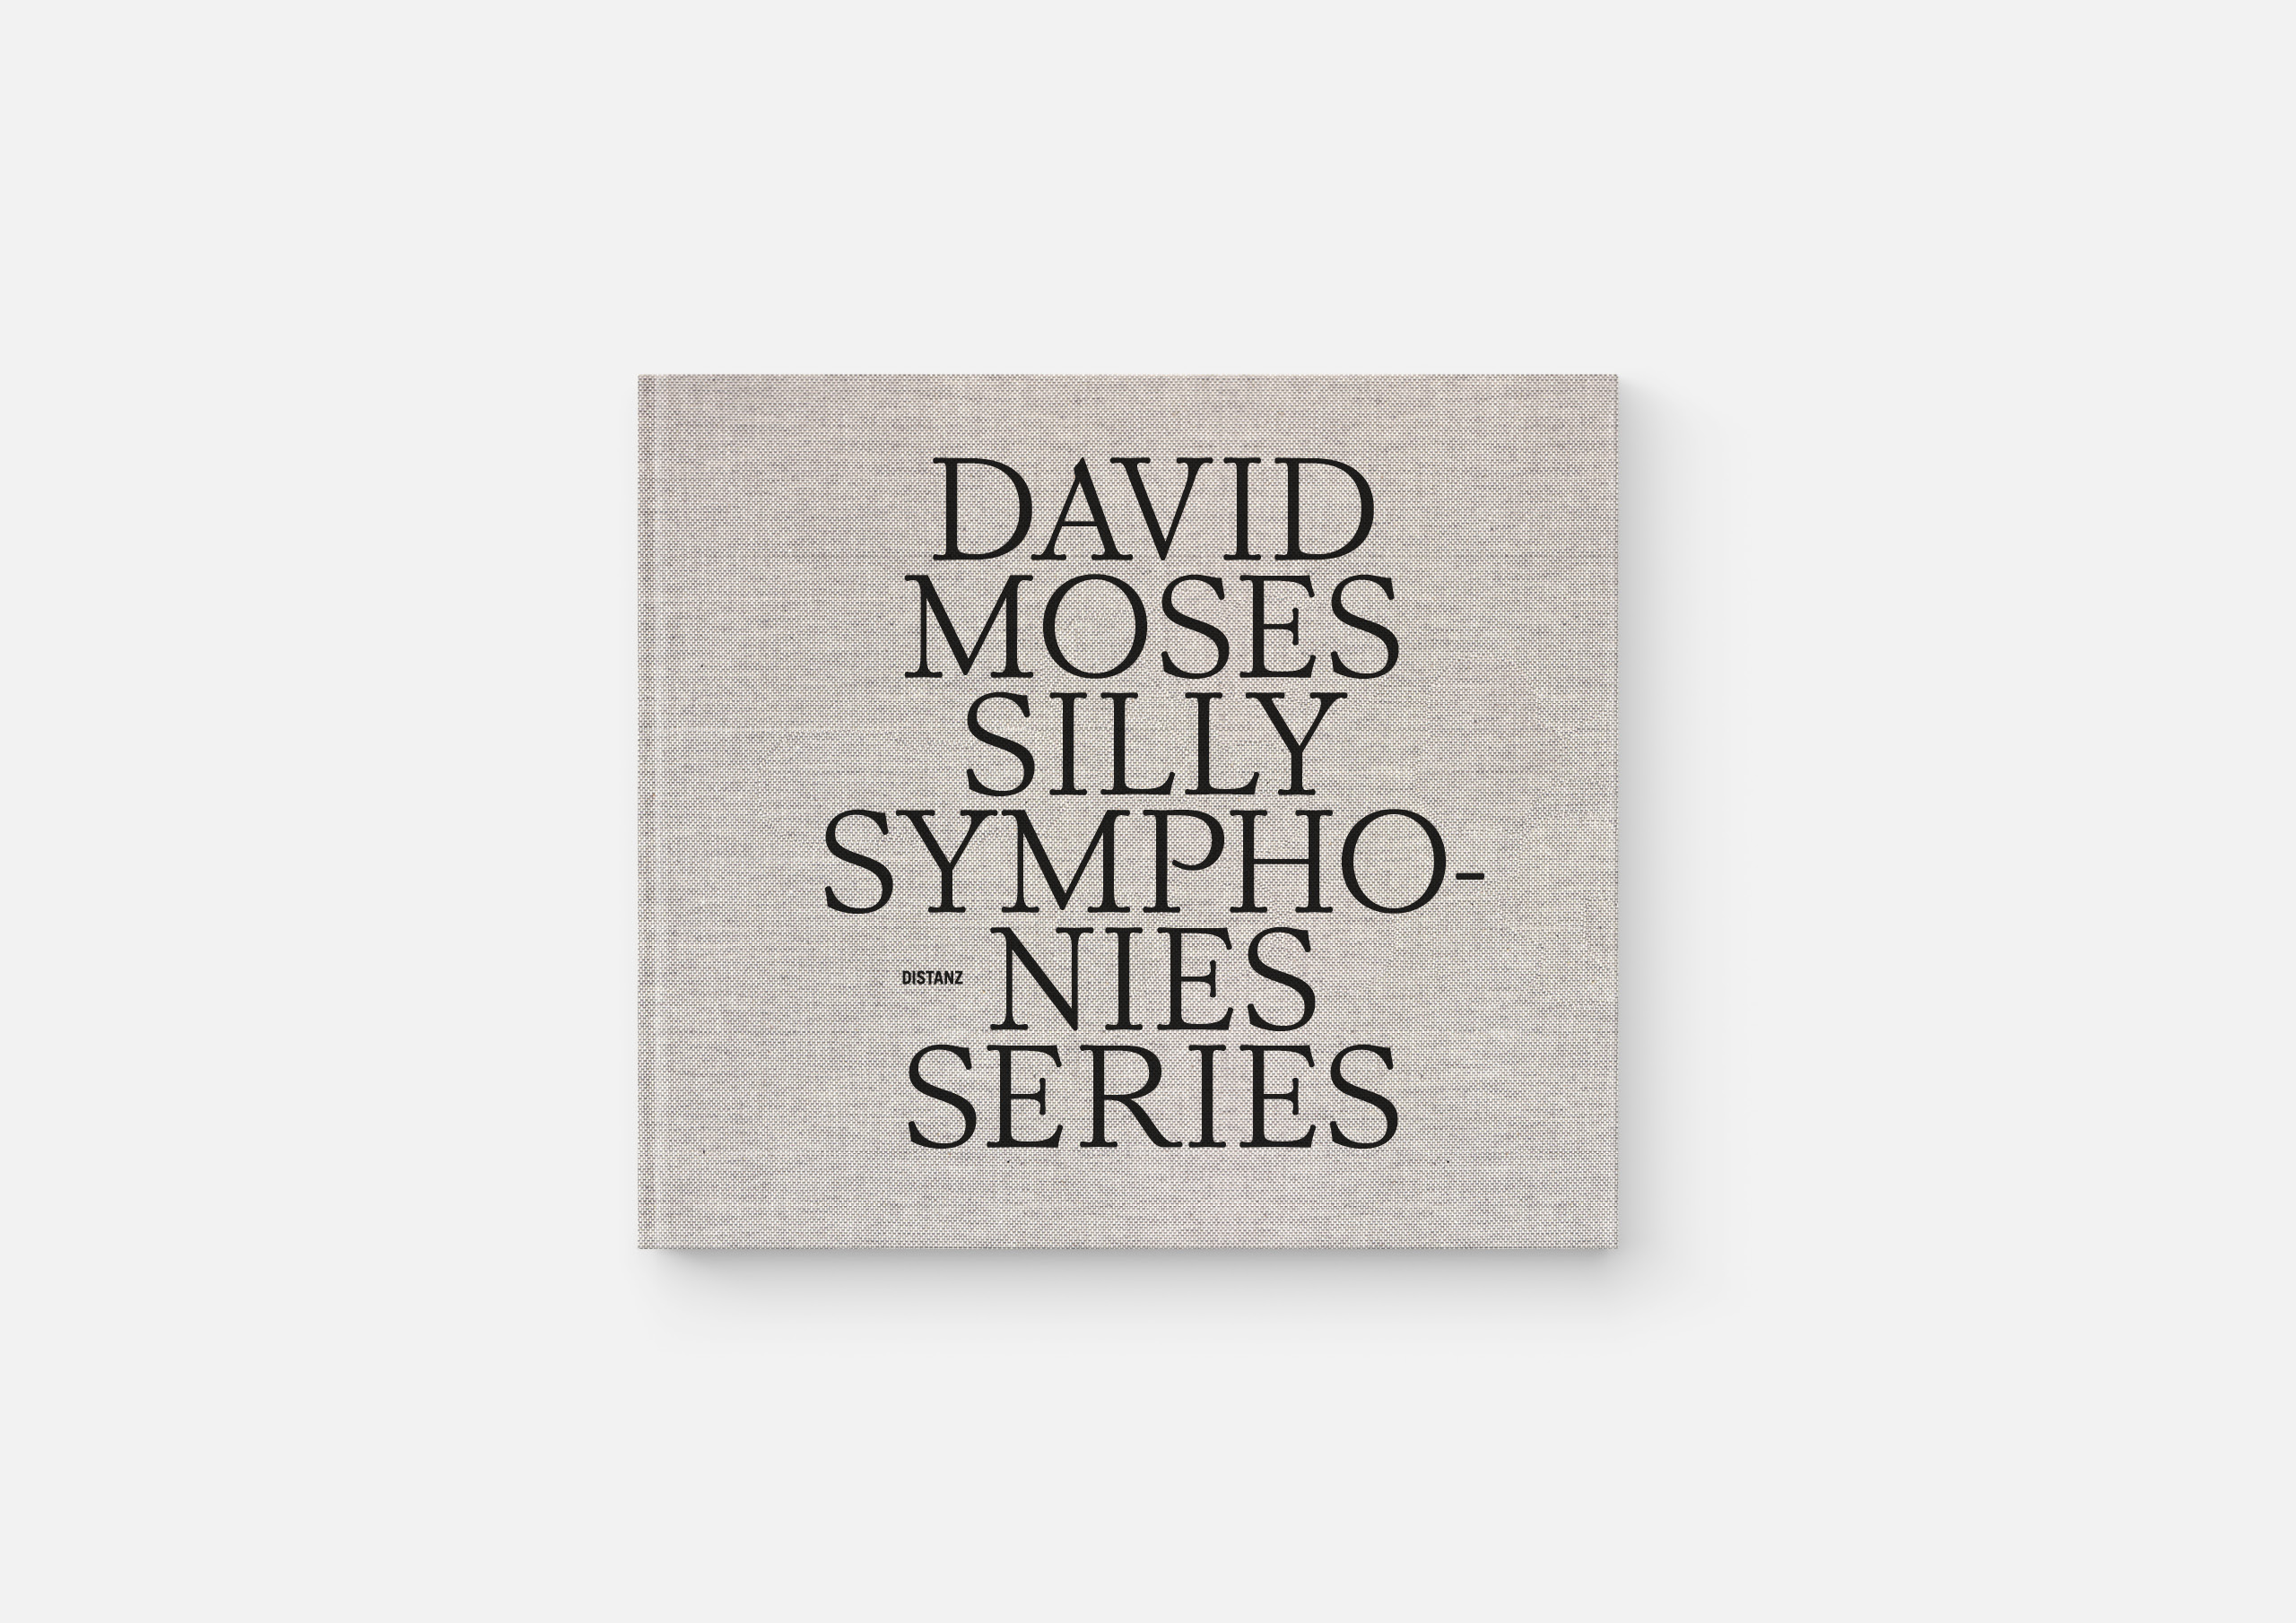 http://www.neuegestaltung.de/media/pages/clients/david-moses/a16838a244-1619427901/dm_silly_01_cover.jpg